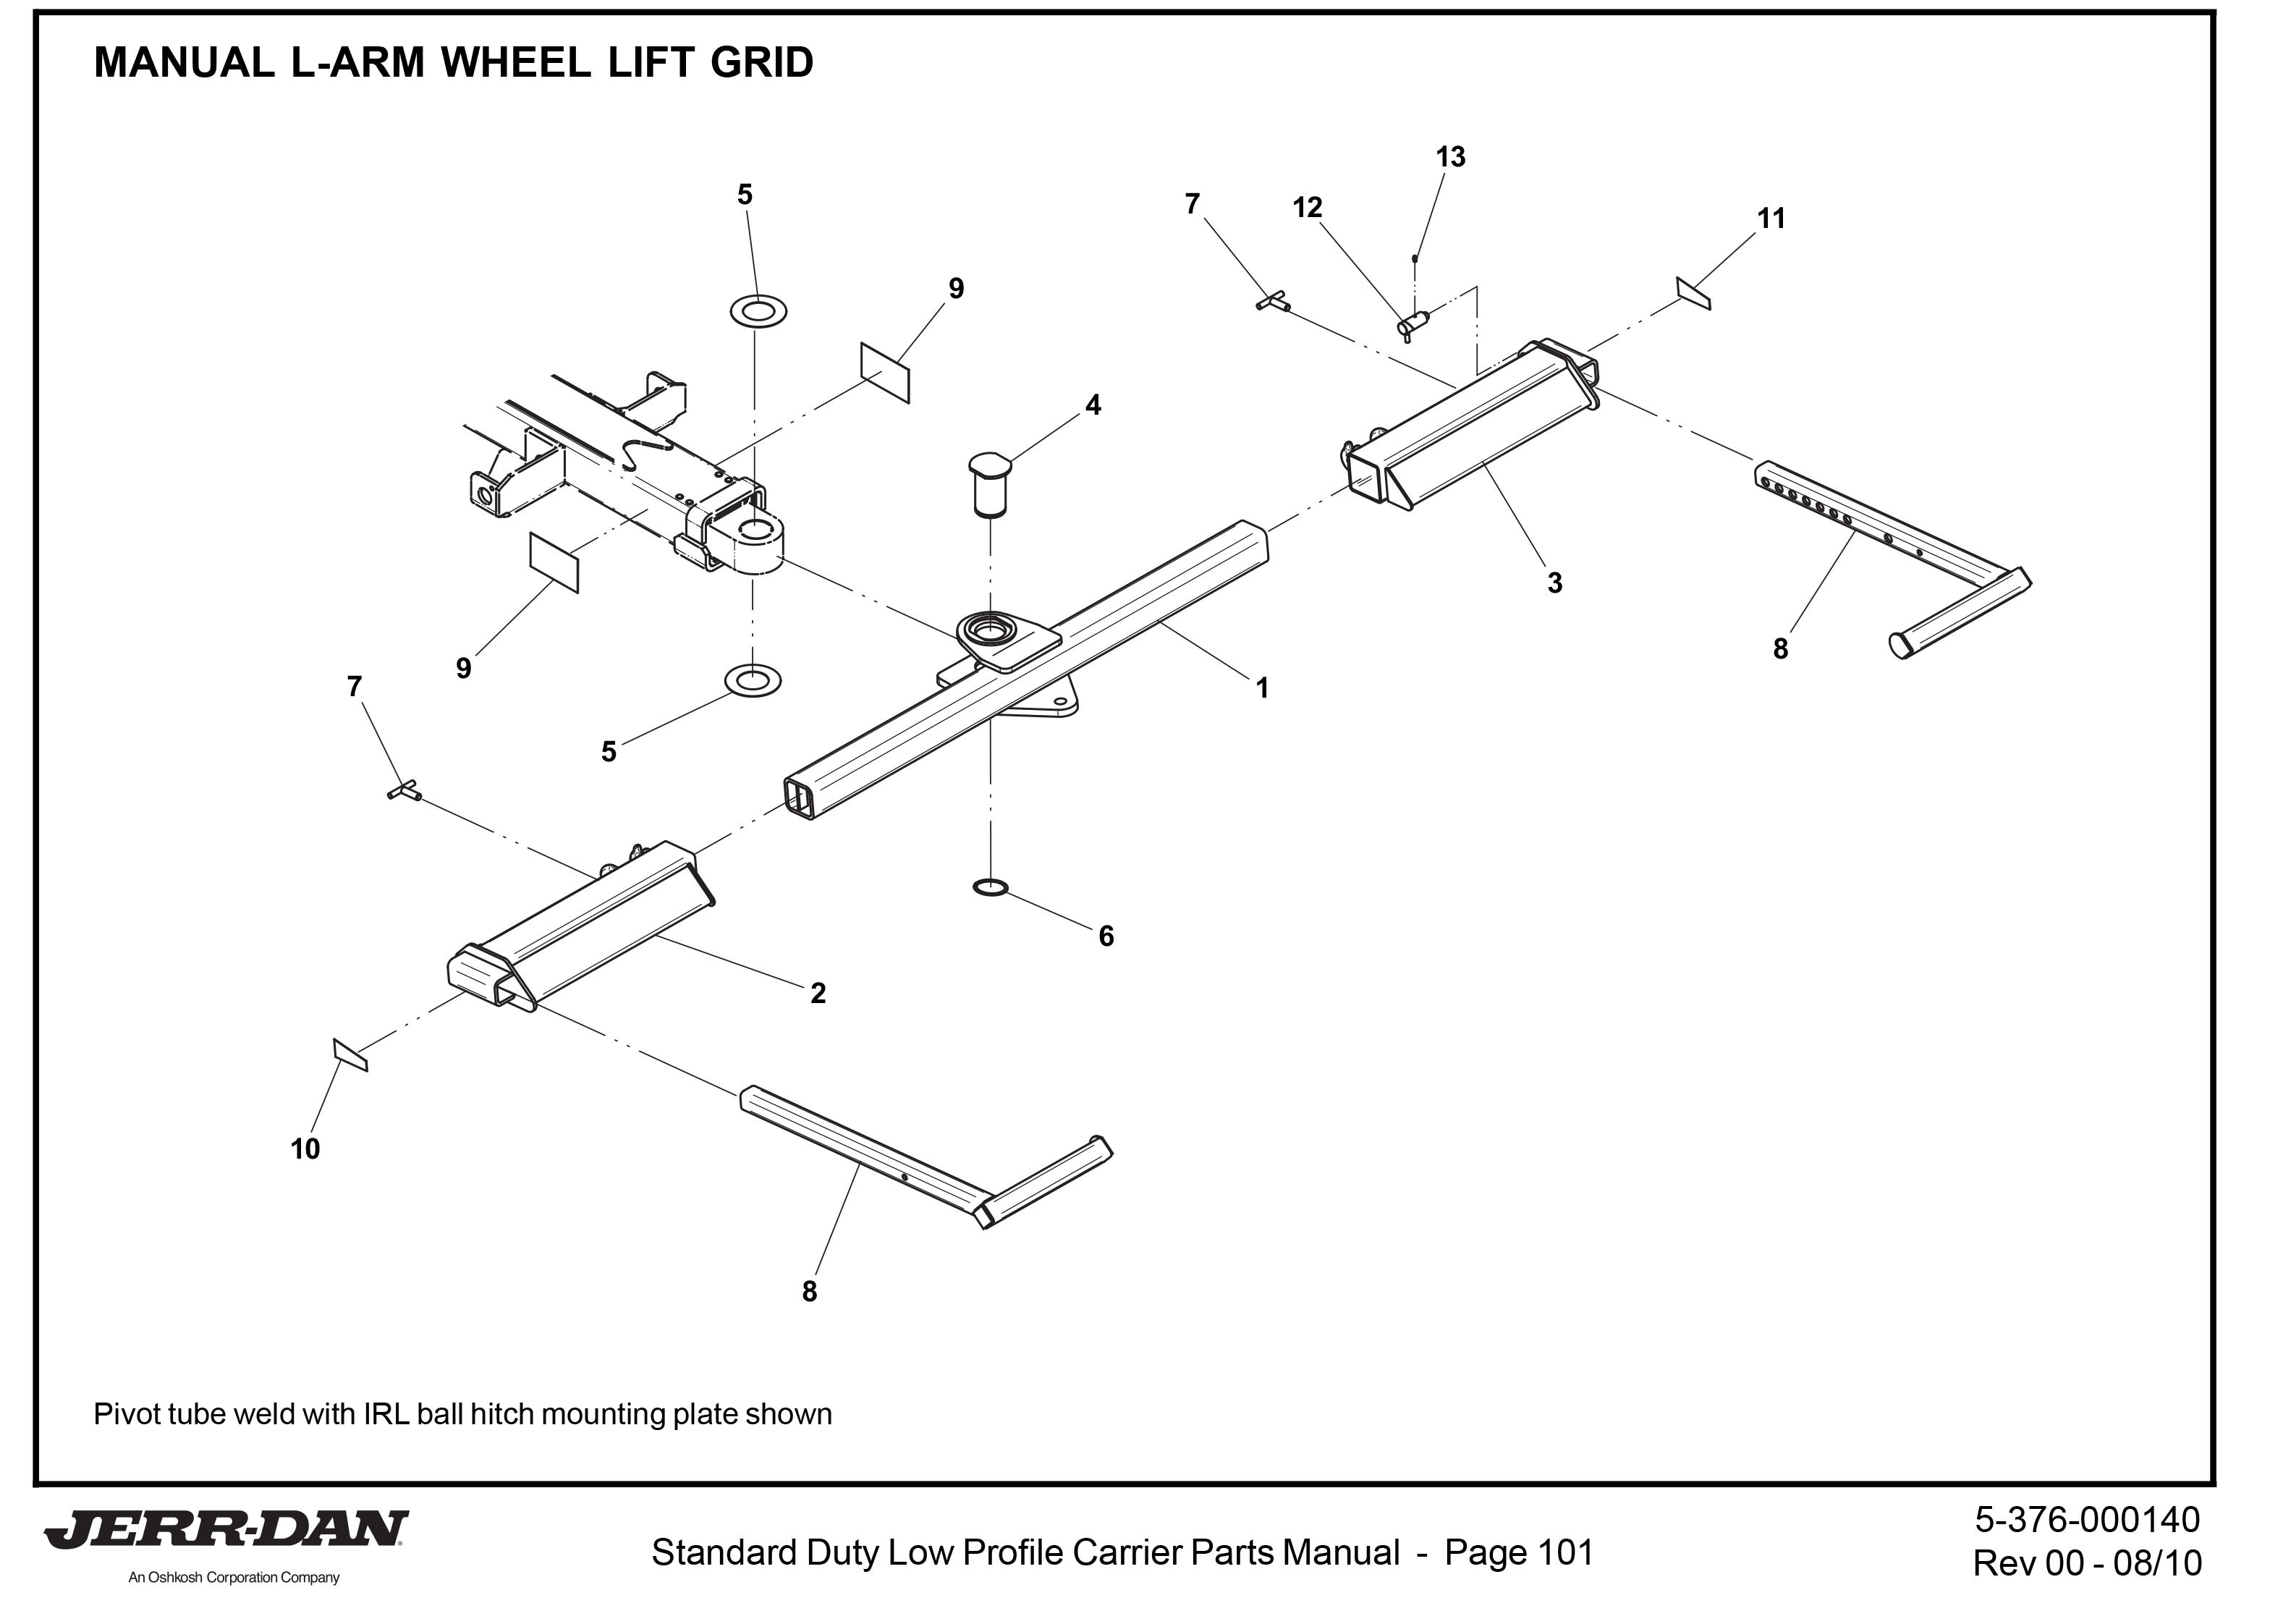 tow hitch wiring diagram with Jerr Dan Wheel Lift Parts Diagrams on Jetta Abs Wire Harness moreover 525 Mercruiser Wiring Diagram in addition Dodge Pickup Trailer Wiring as well Trailer wiring Diagram furthermore How Choose Hitch Your Vehicle.